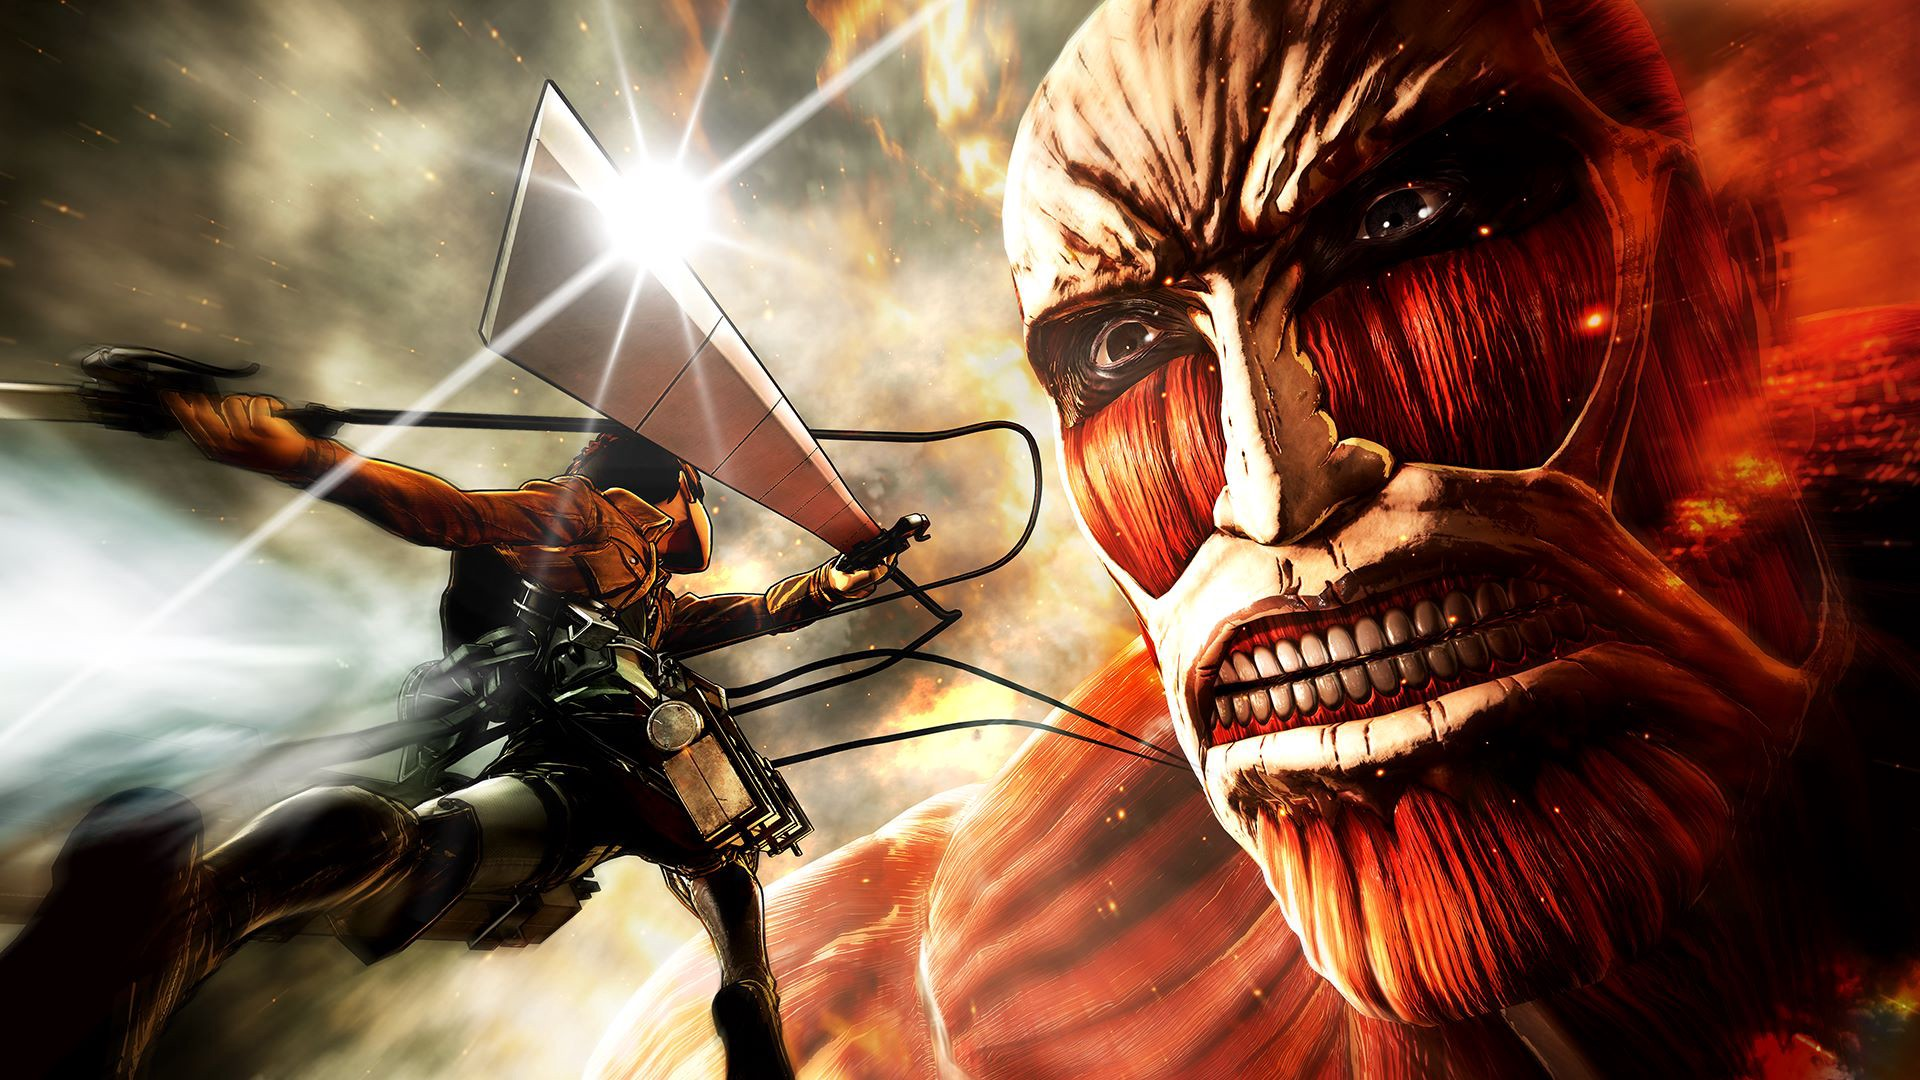 Attack on Titan Chapter 136 Read Online Legally and Official Release Date